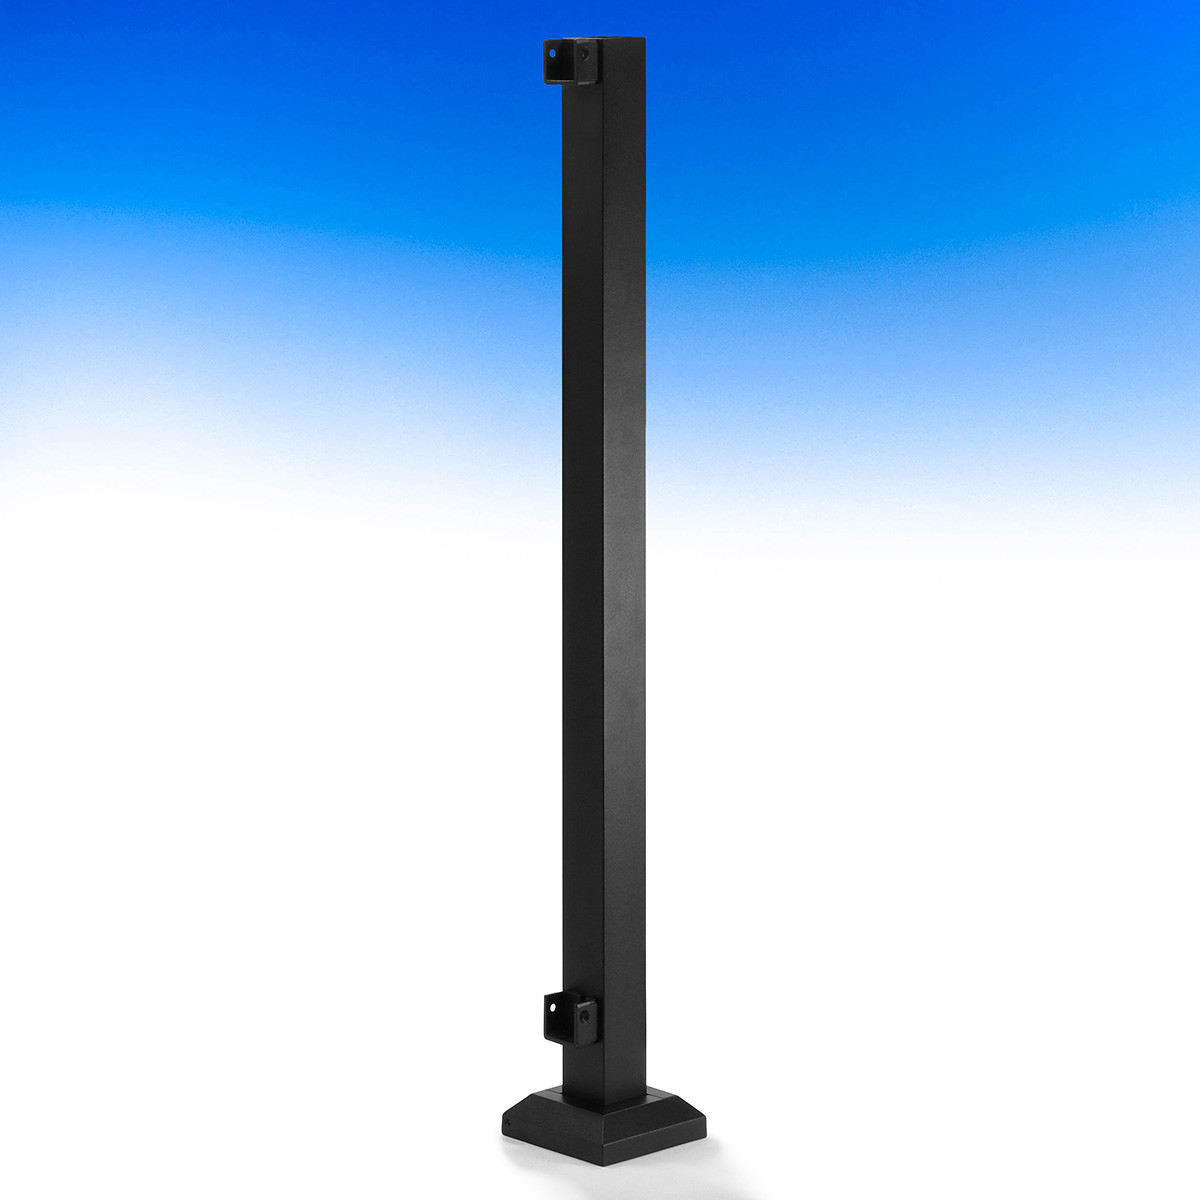 AL13 Home Aluminum Post with Skirt and Pre-Installed Brackets by Fortress - End - Textured Black - 2 x 2 in